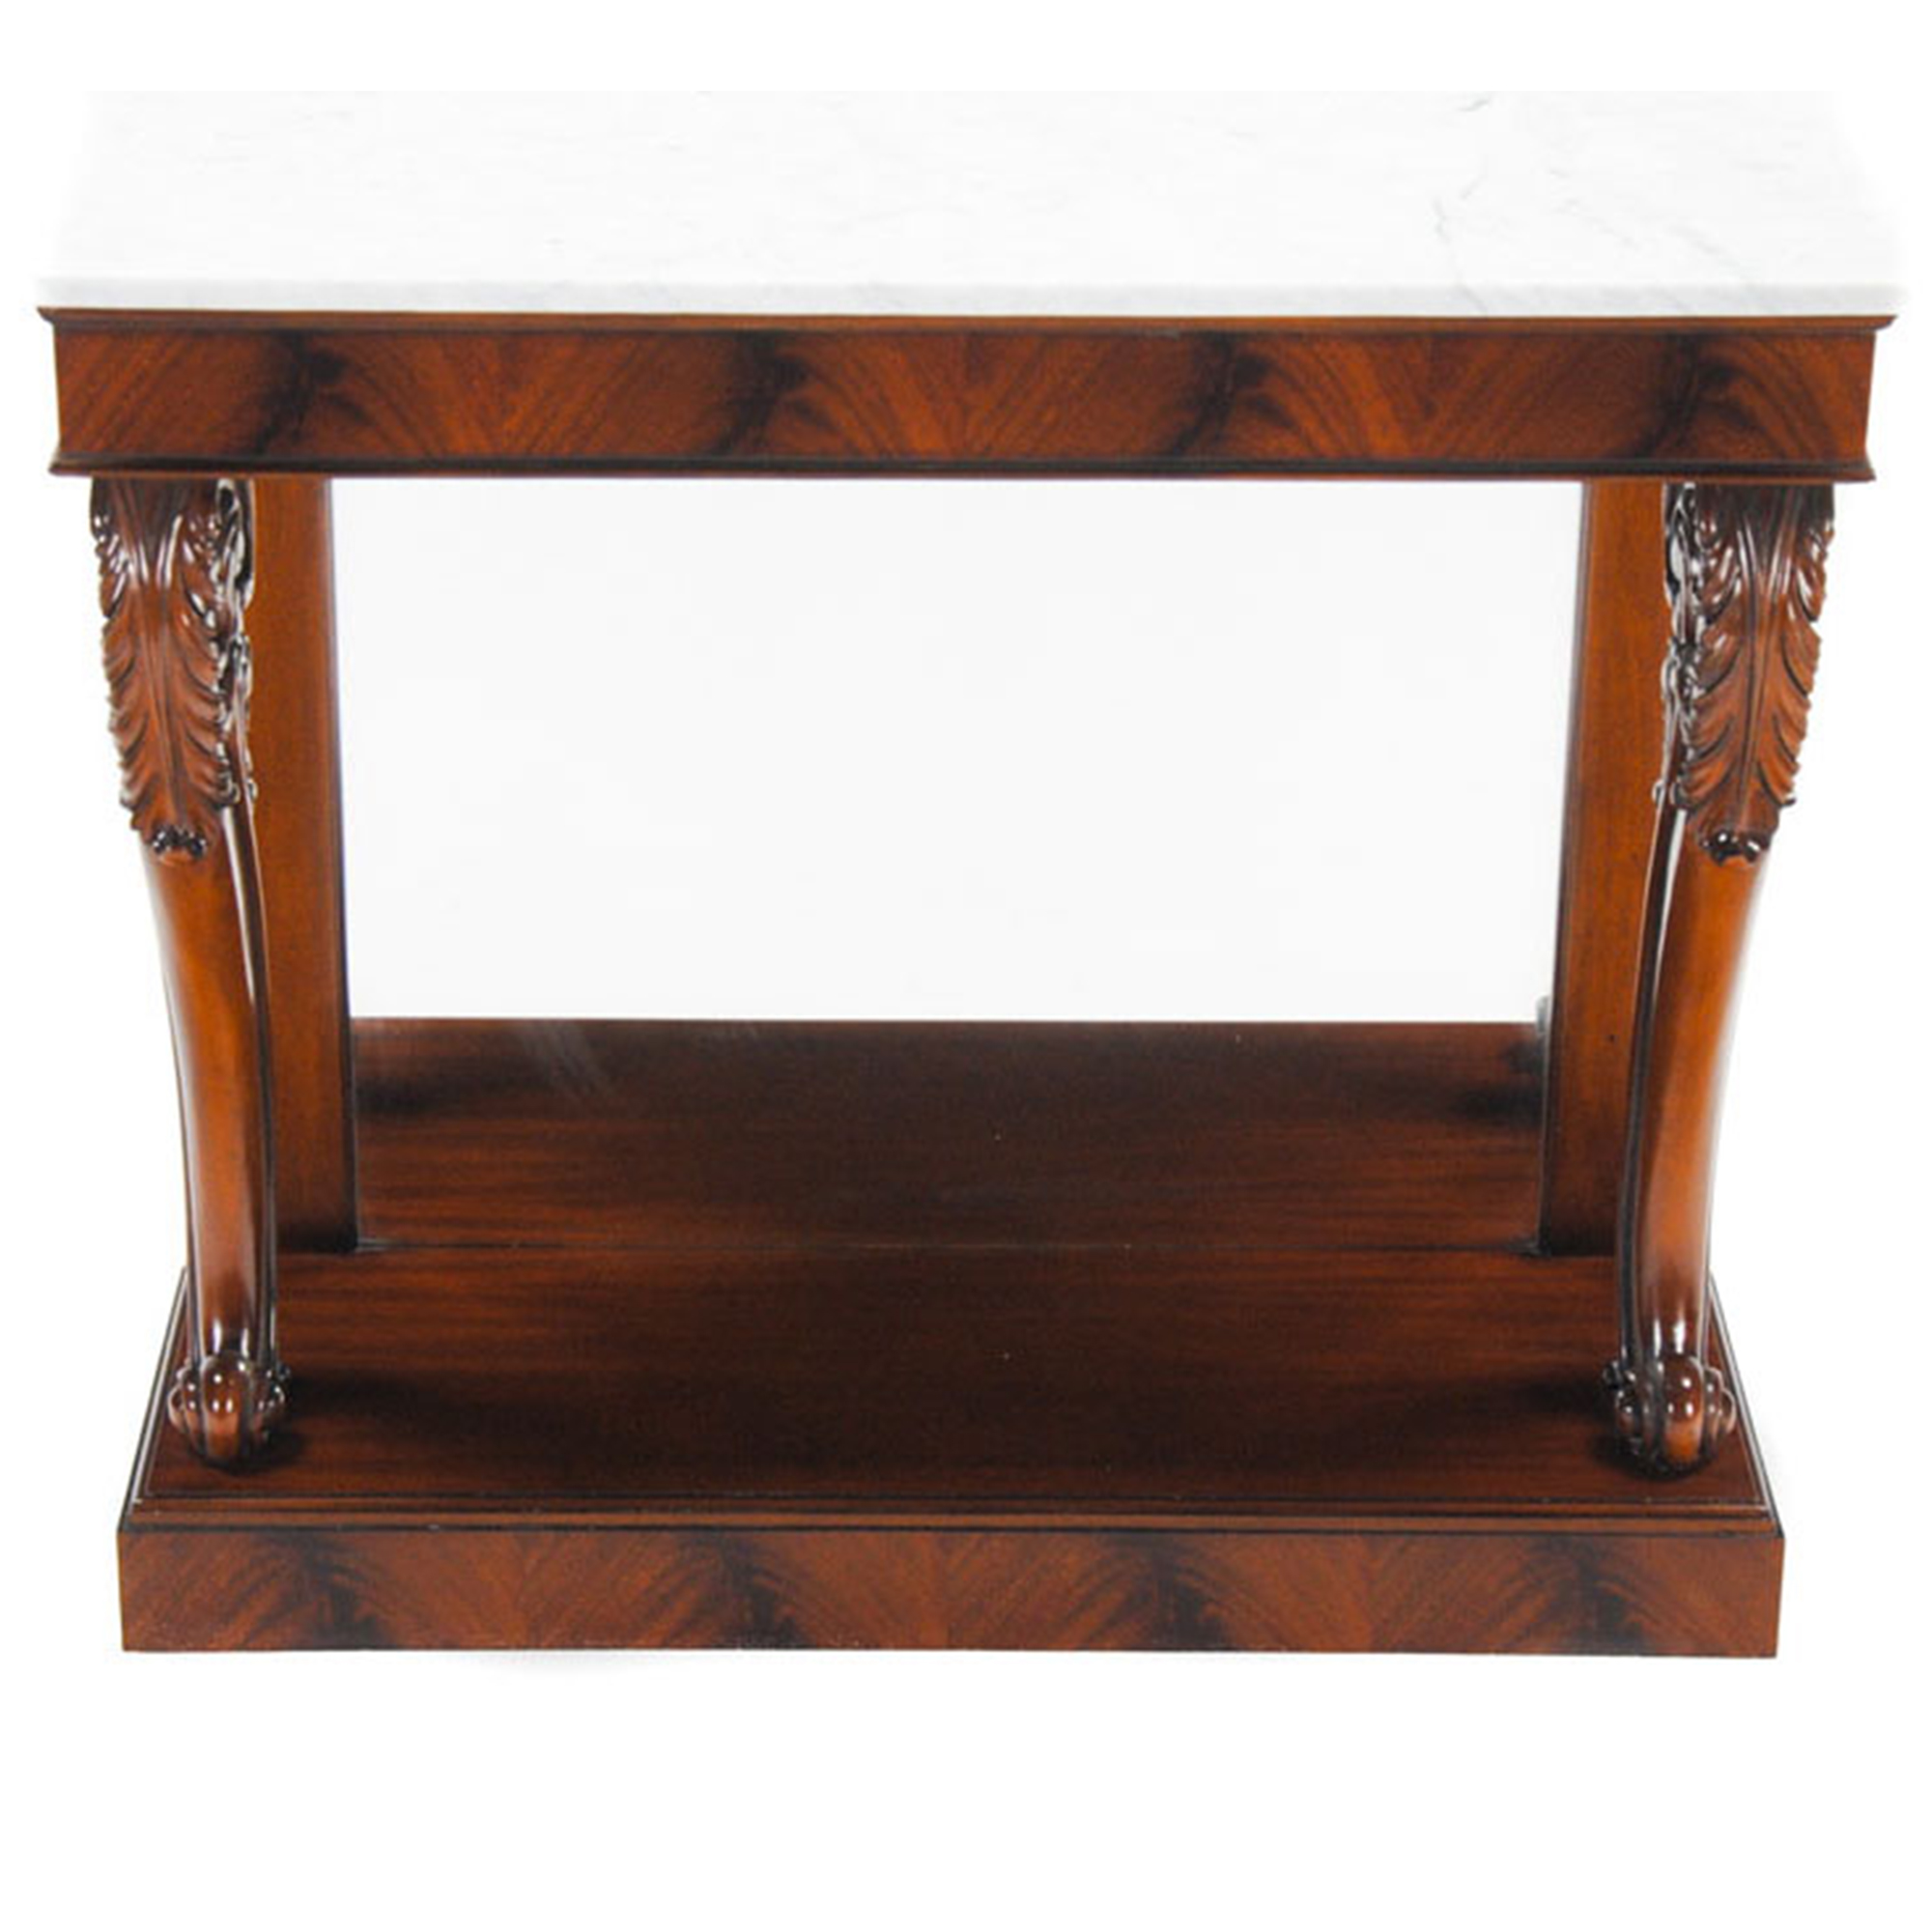 Mahogany marble top console niagara furniture console mirror - Marble tops for furniture ...